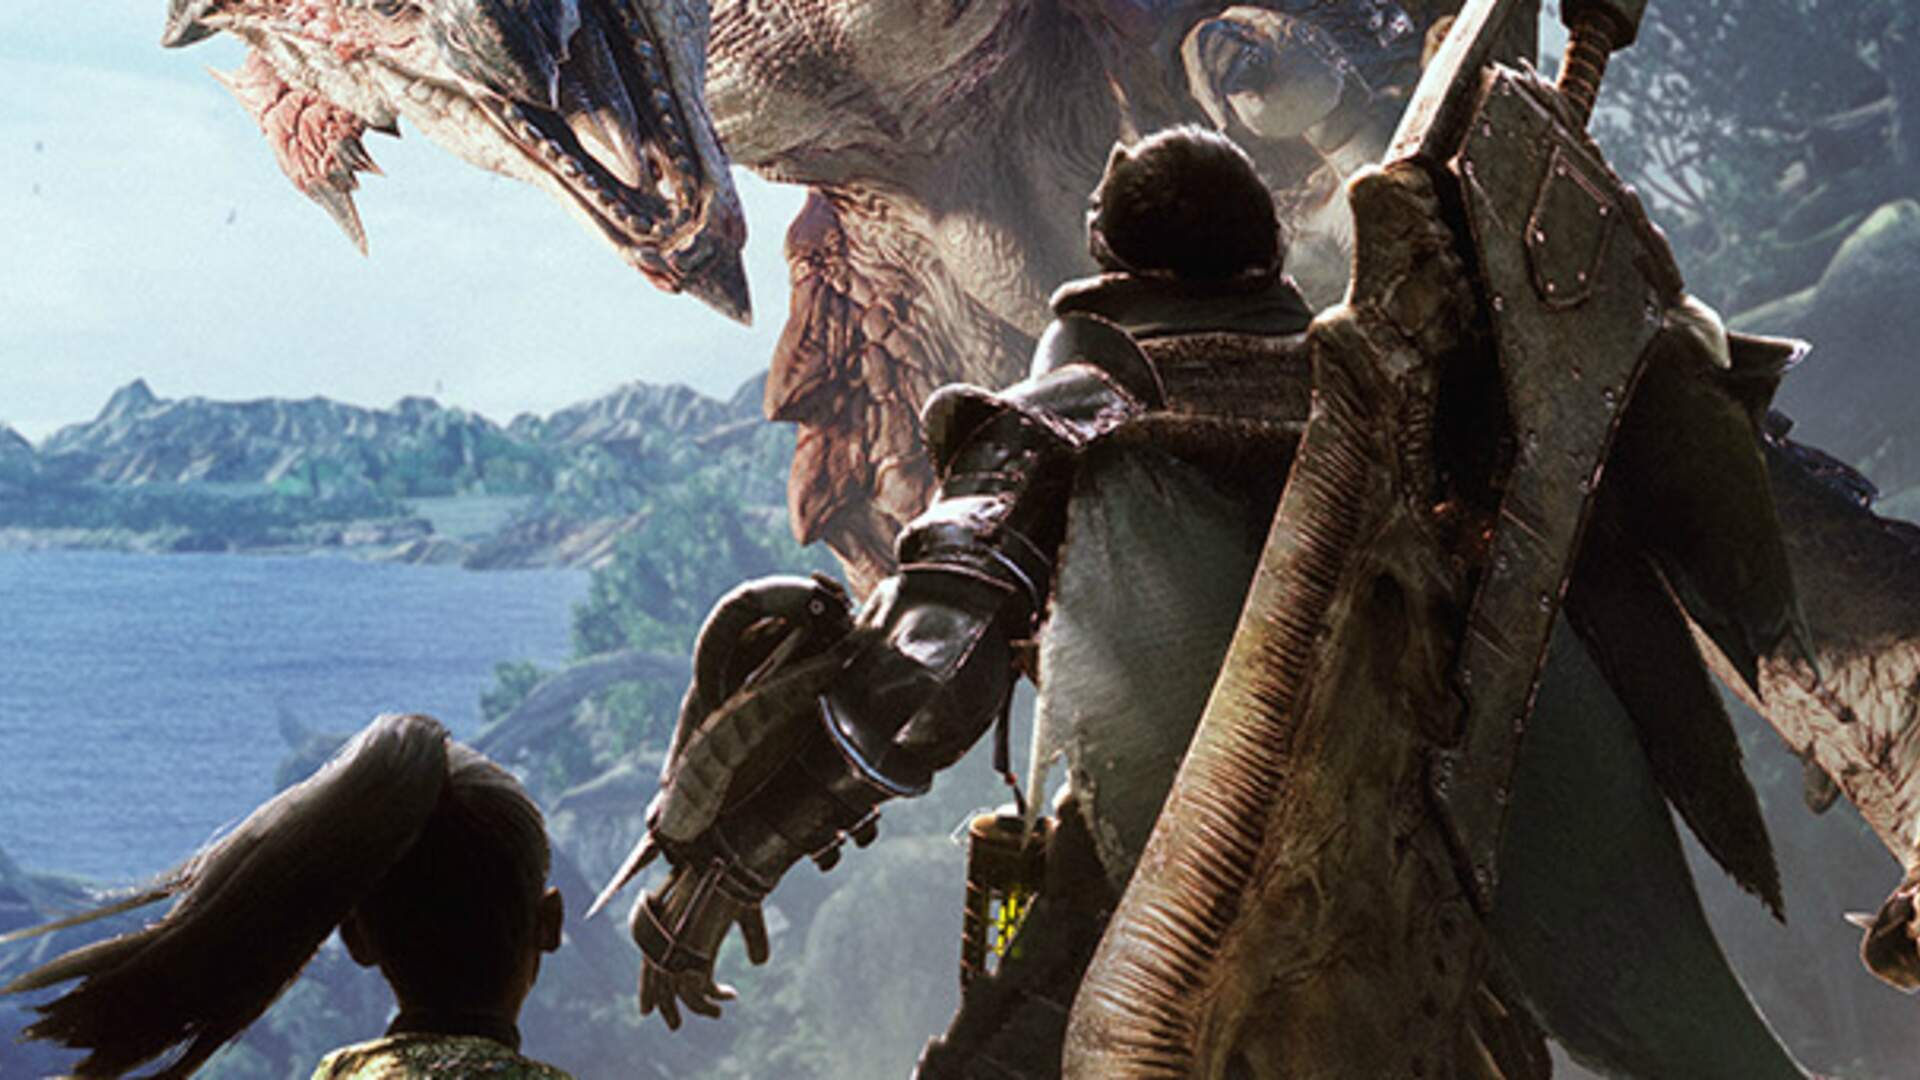 Monster Hunter World 2.01 Update to fix Glitches For Bow and Item Pouch